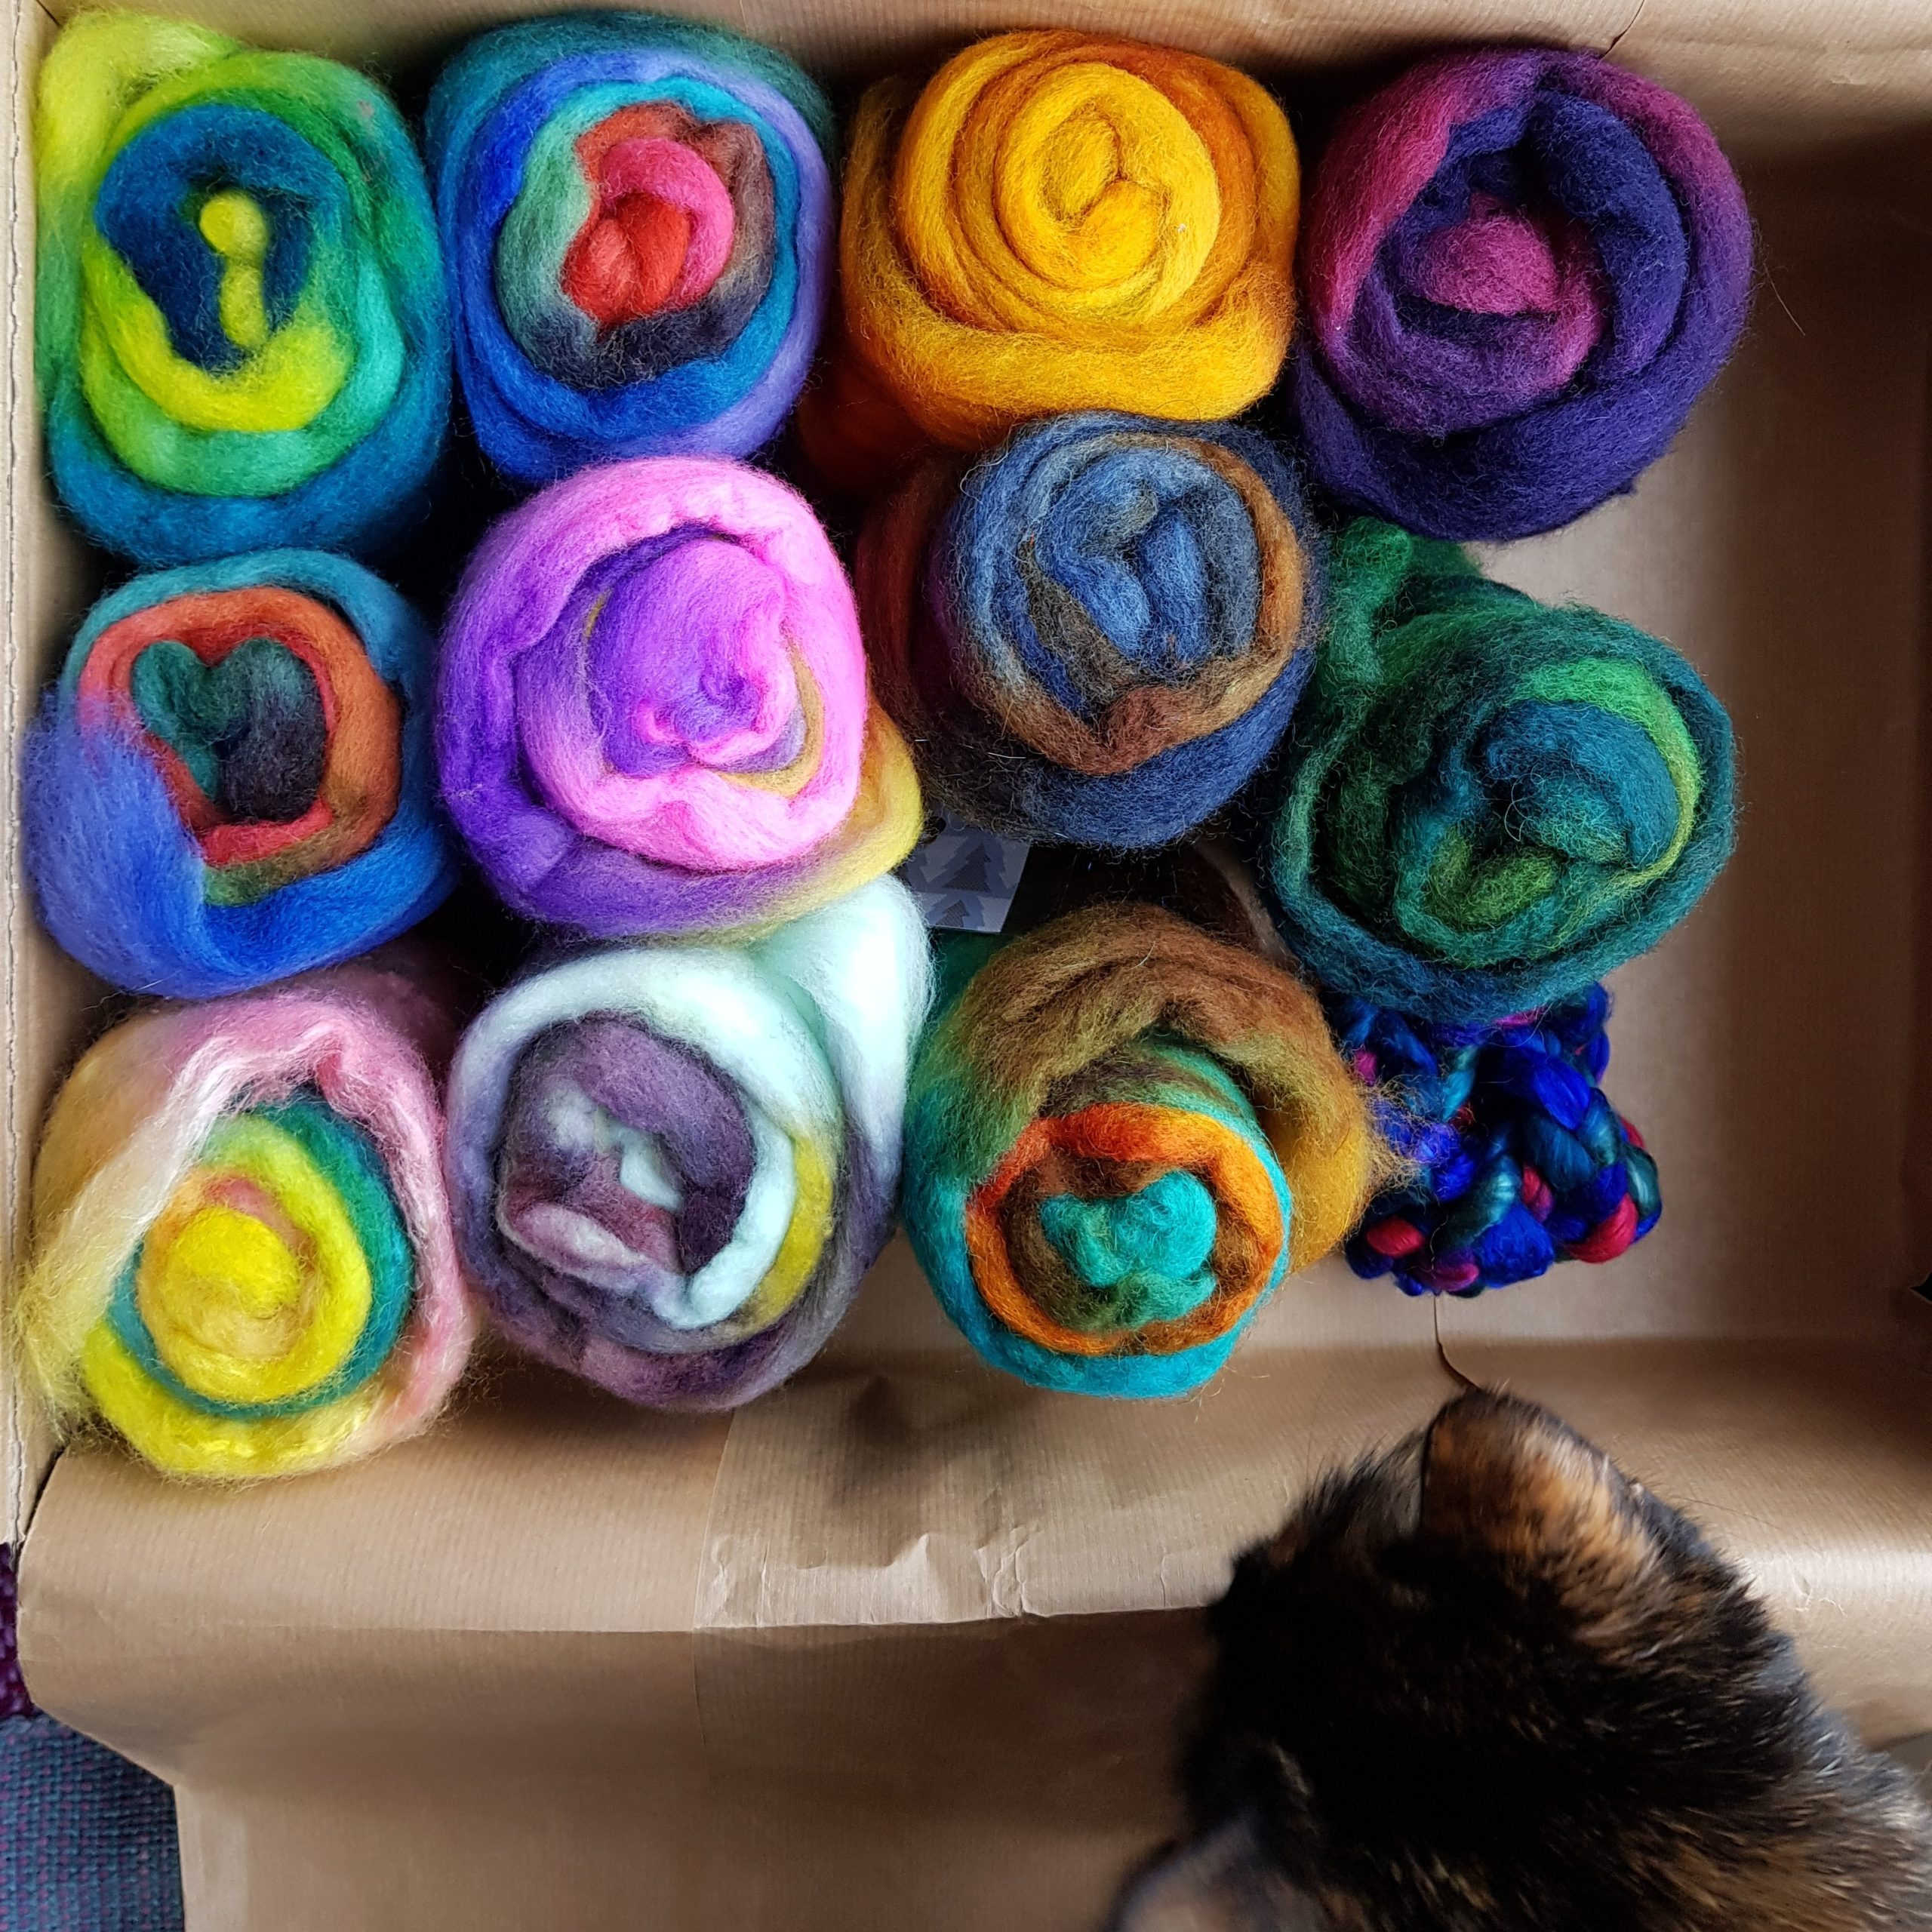 A cardboard box full of minibatts in multiple bright colours.